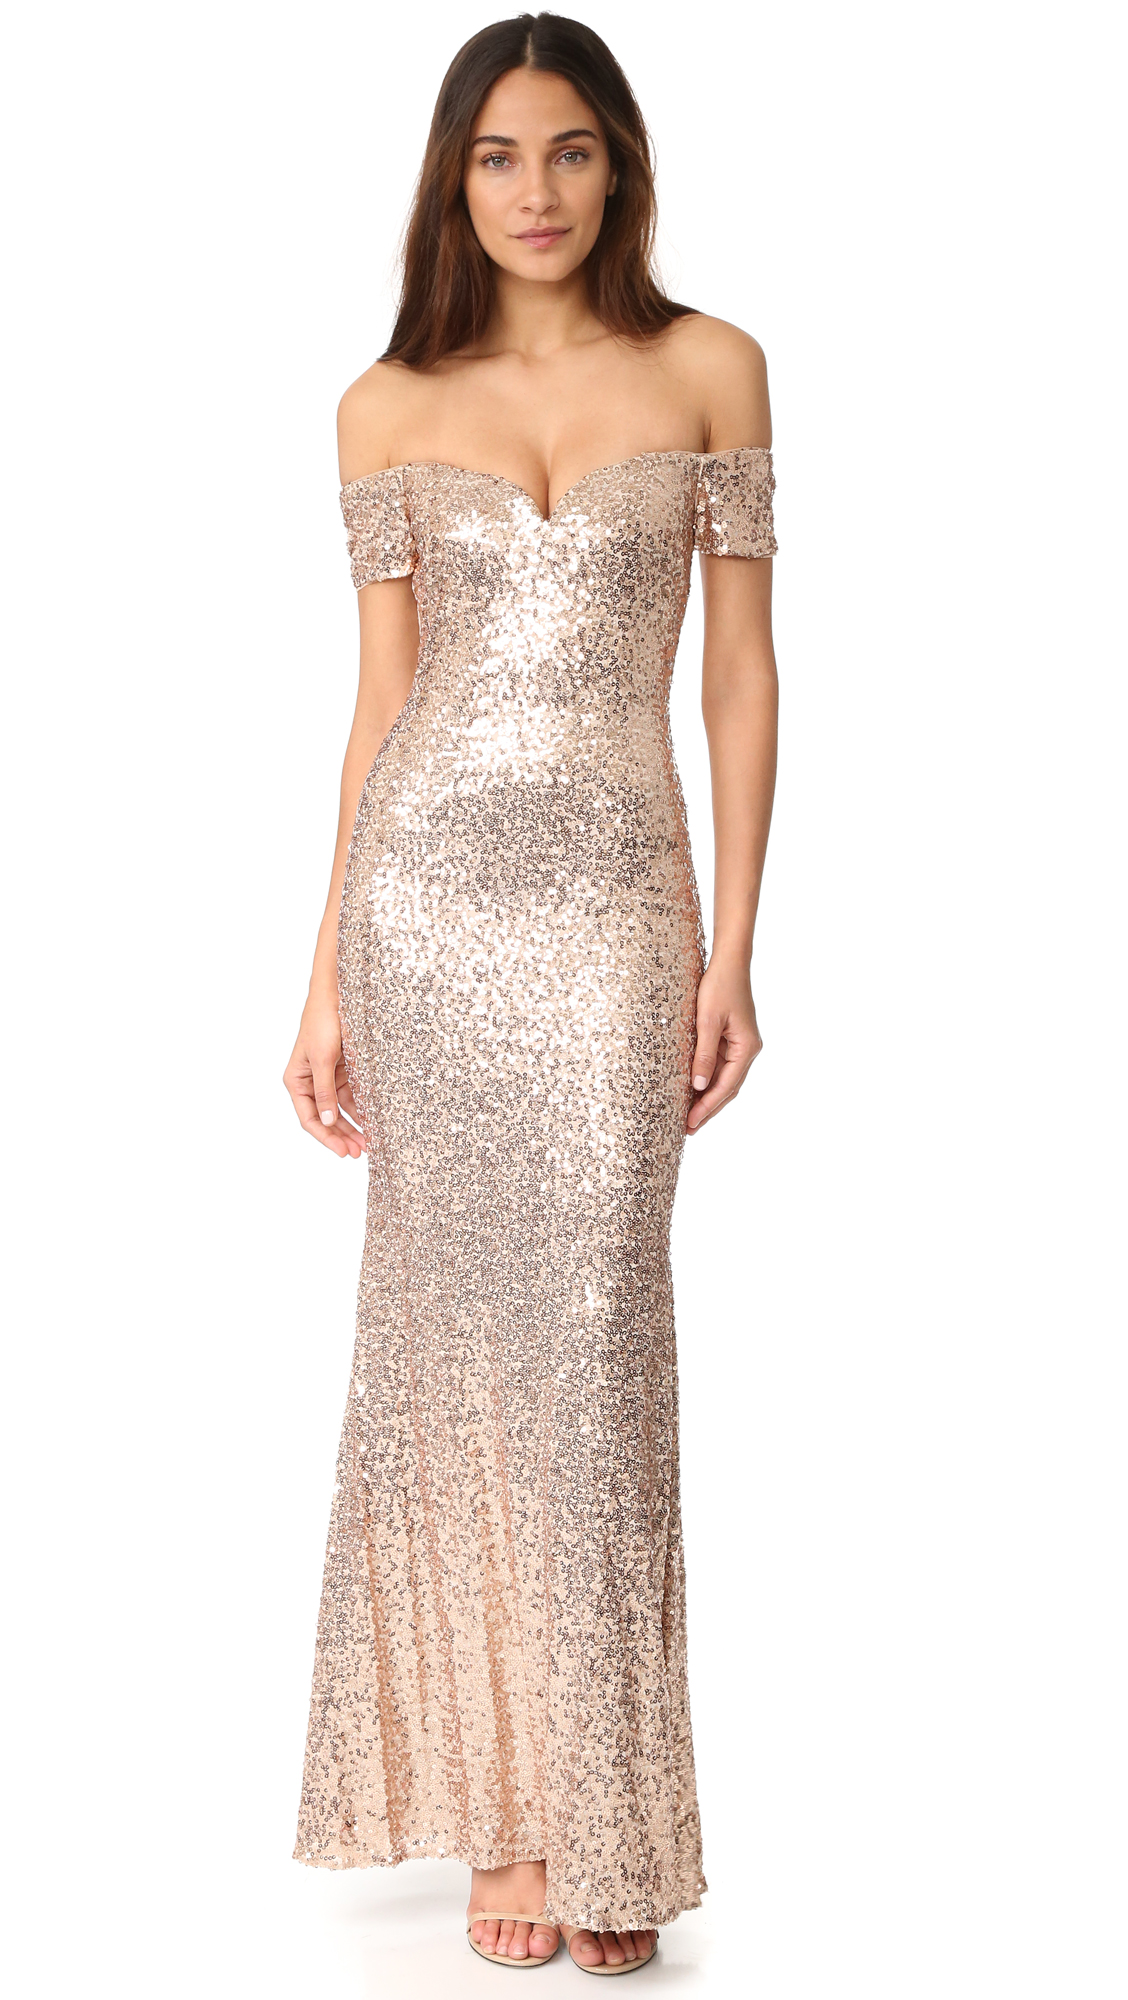 Spangled sequins lend timeless glamour to this off shoulder Badgley Mischka Collection gown. Inset wiring shapes the sweetheart neckline. Nonslip rubber binding at top hem. Flexible boning. Hidden back zip. Lined. Fabric: Embroidered mesh. Shell: 100% nylon.